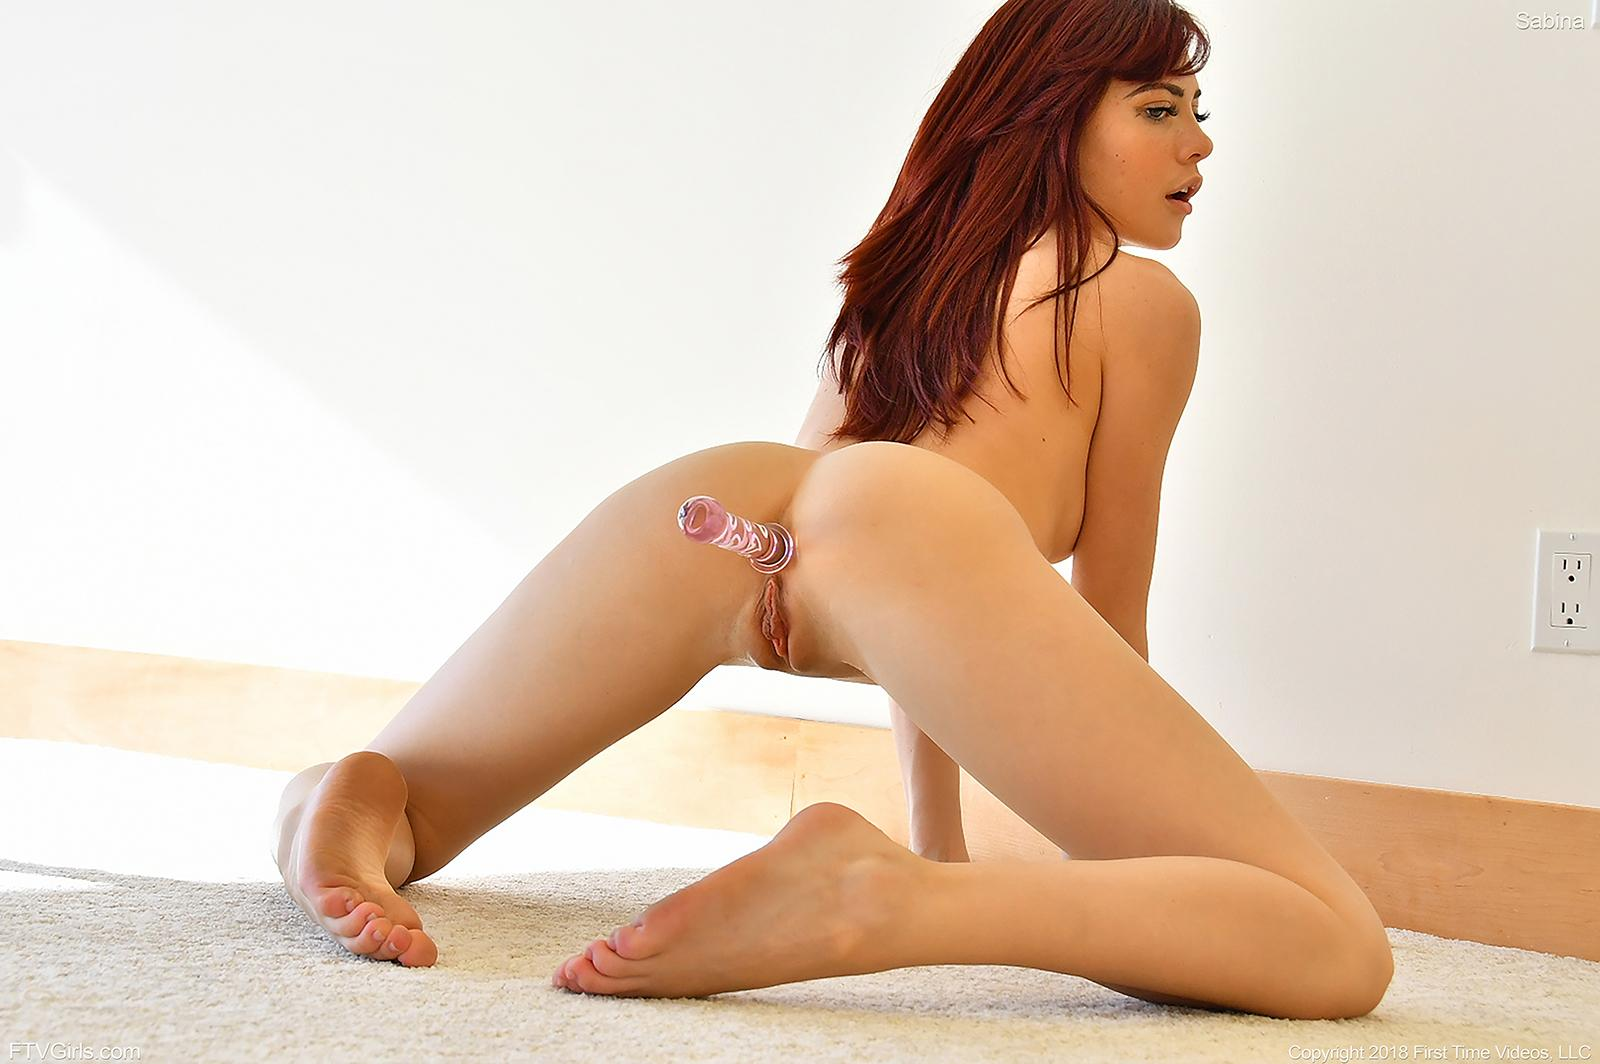 Celeb Sexy Red Head Naked Woman Gif